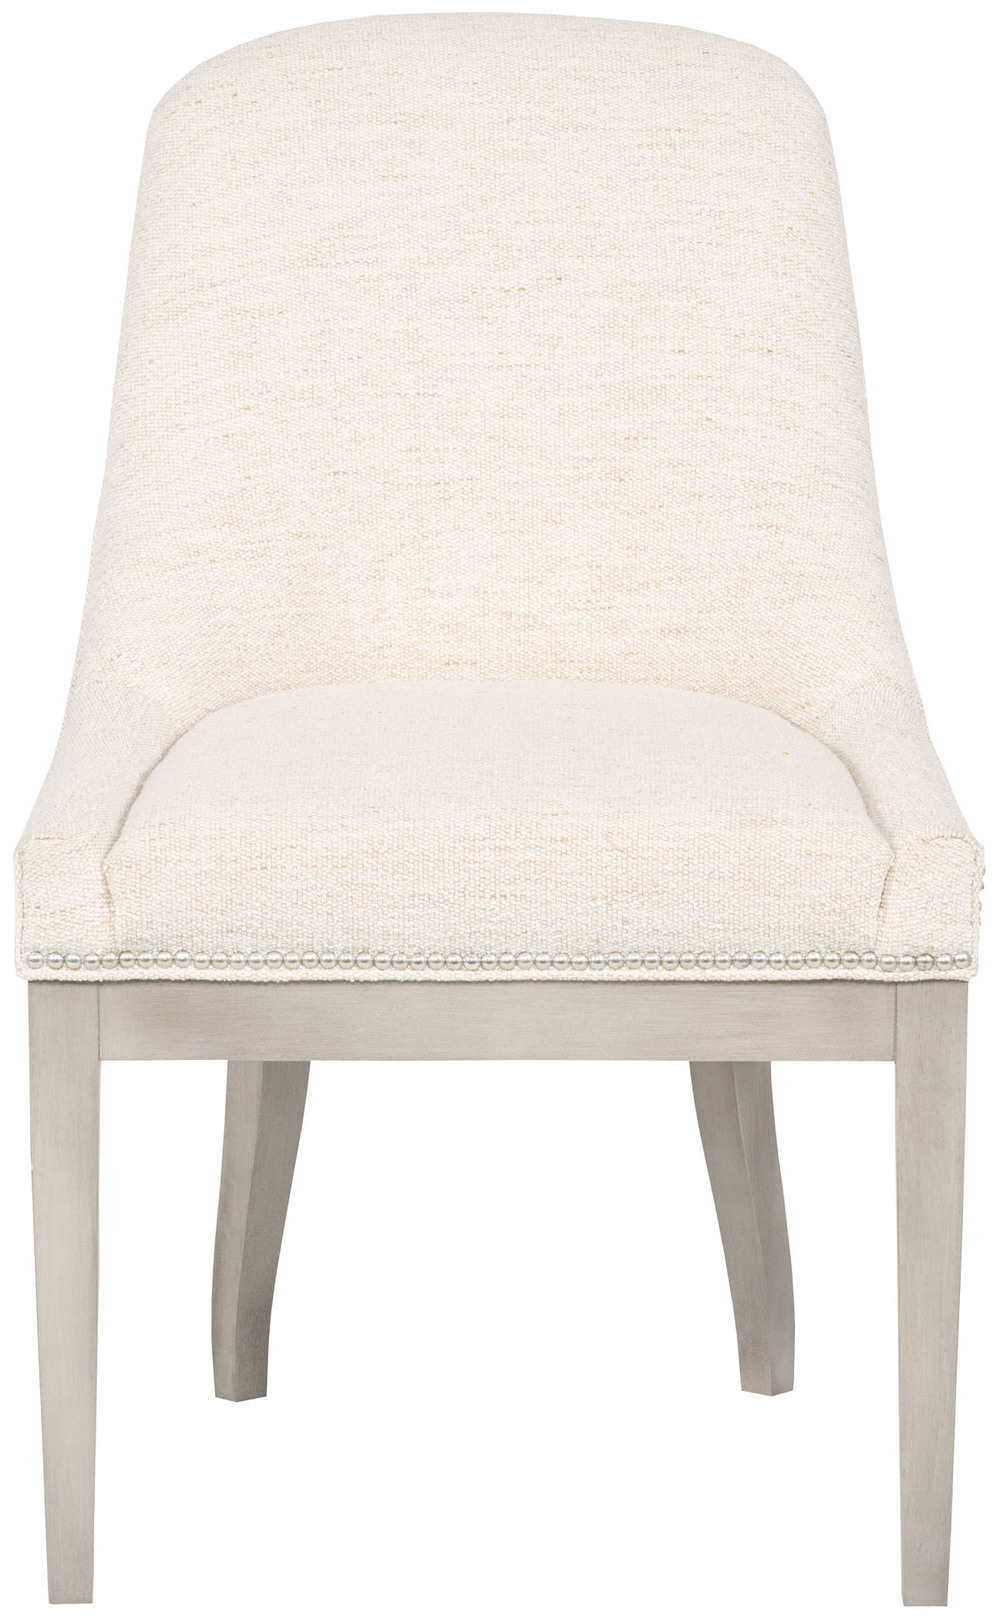 Vanguard Furniture - Calloway Side Chair